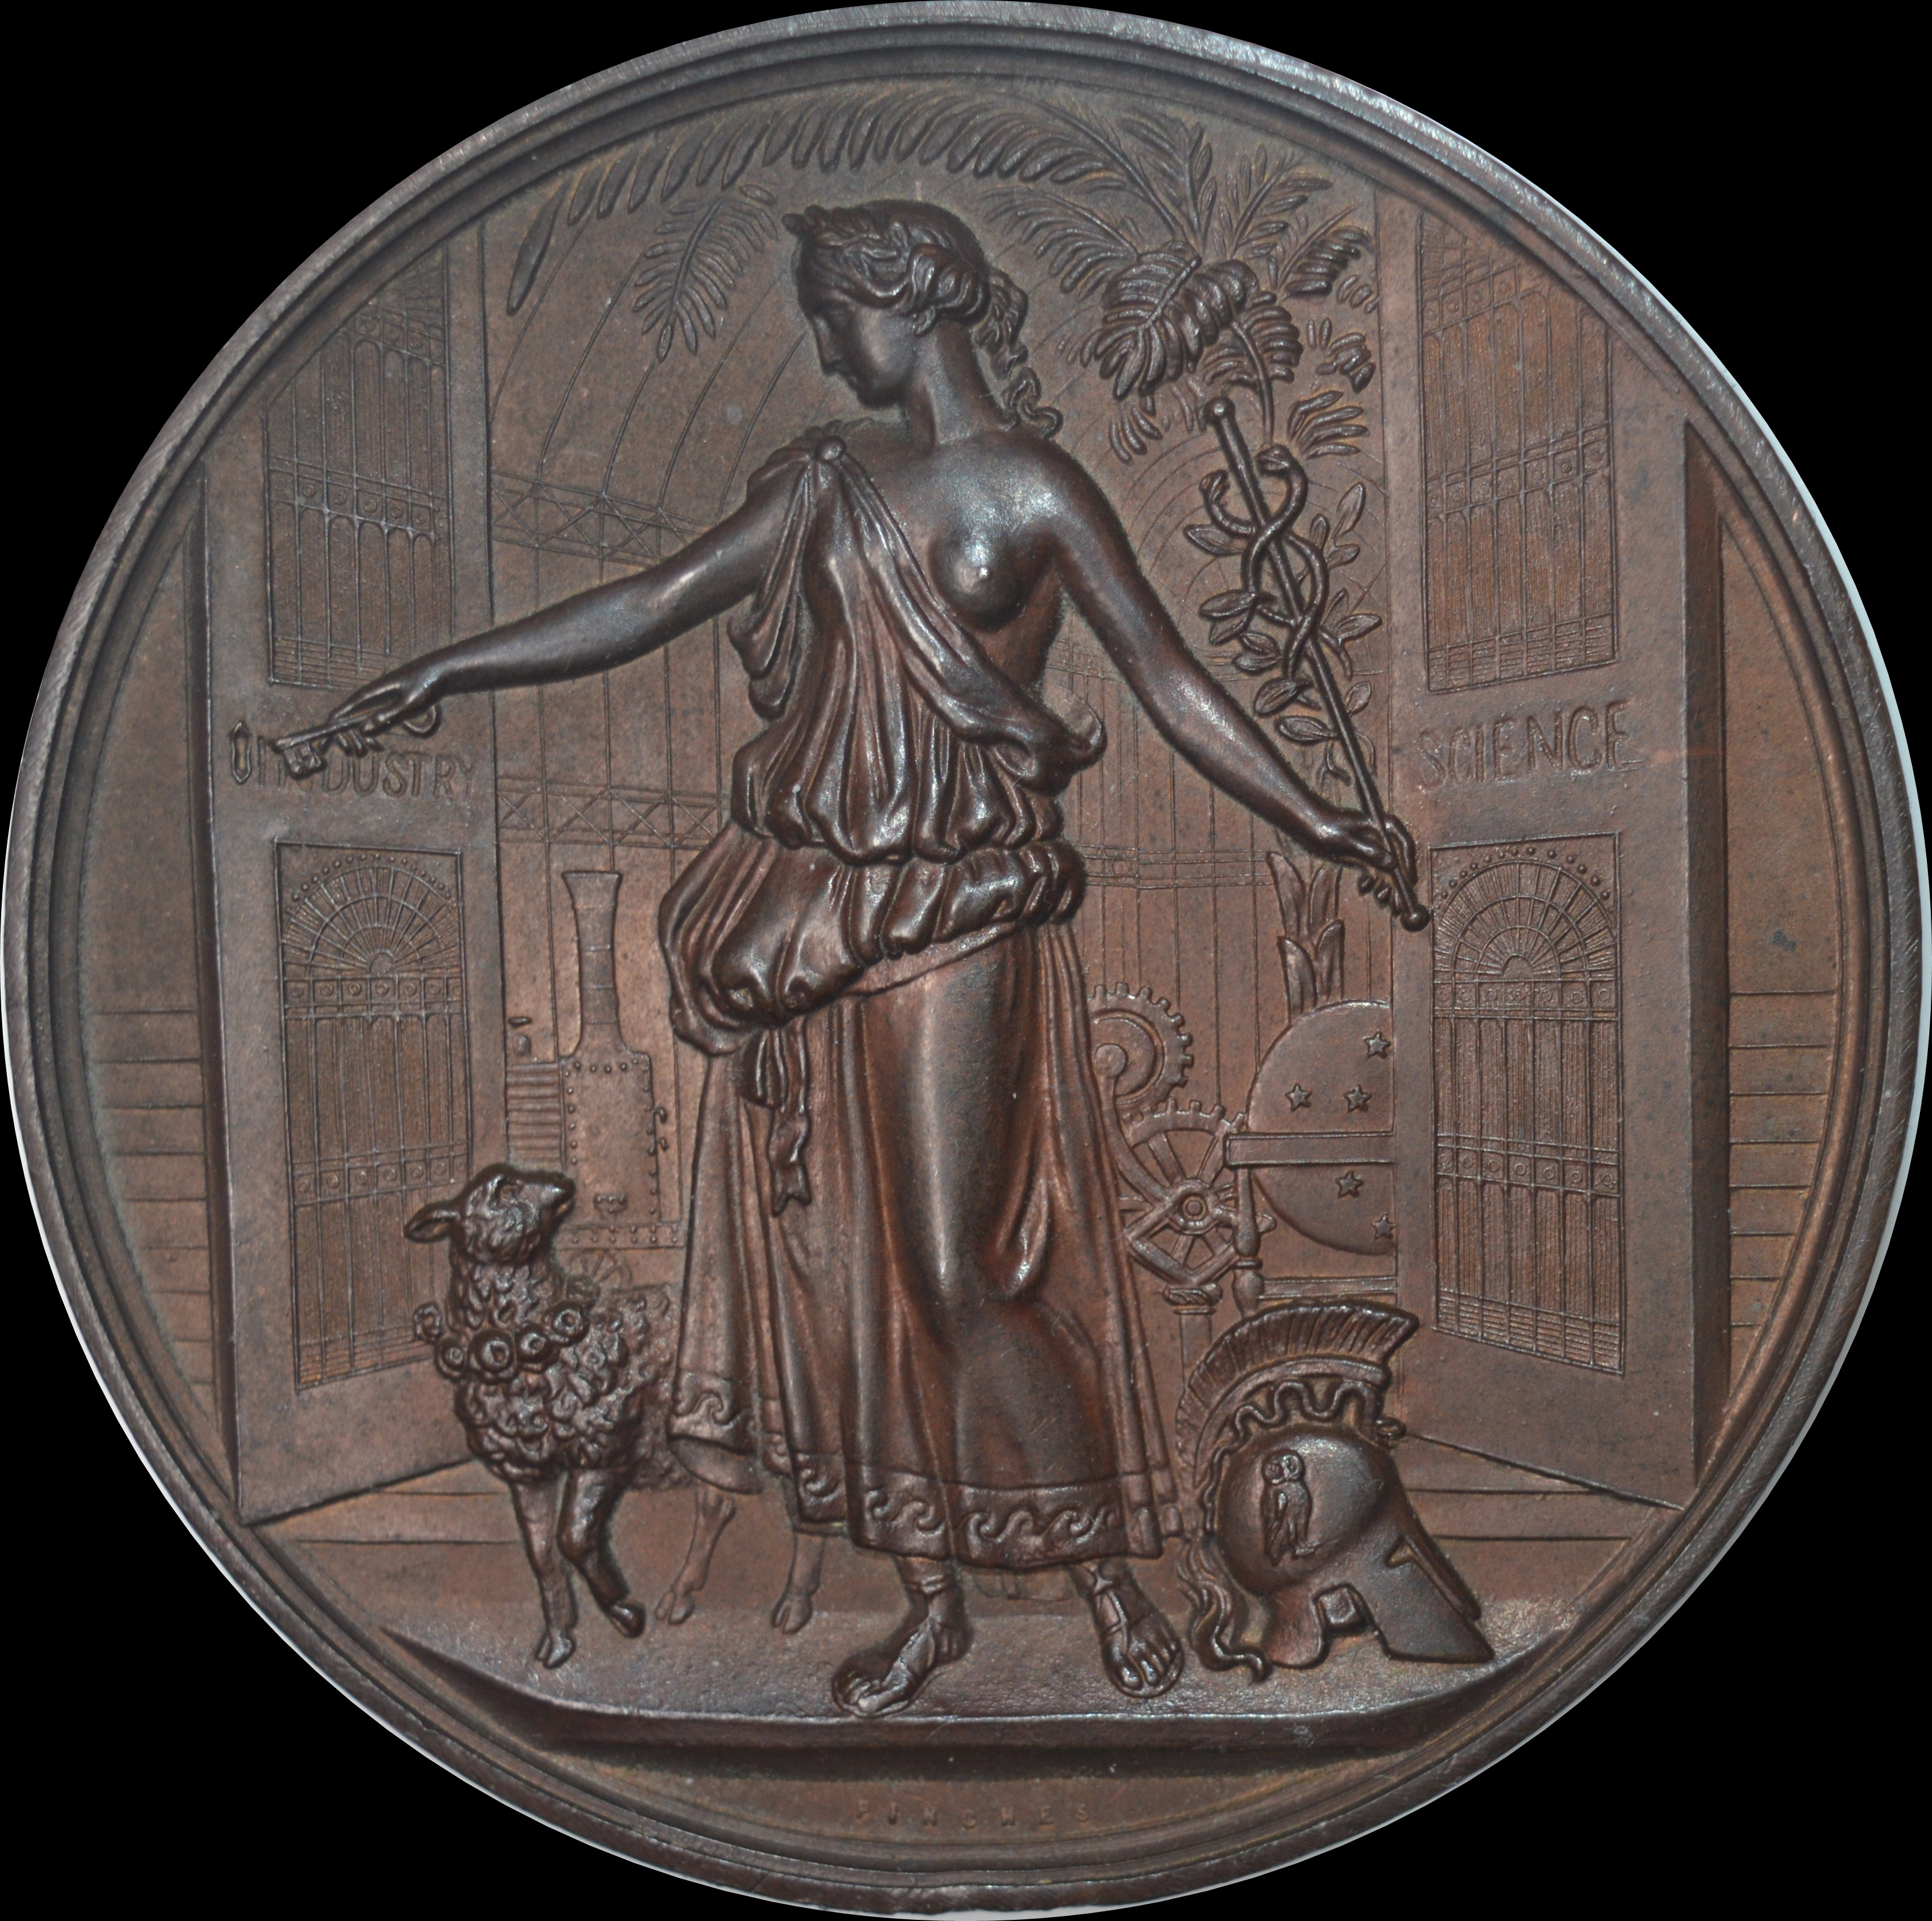 Queen Victoria - 1884 Crystal Palace Exhibition Bronze medal by Pinches